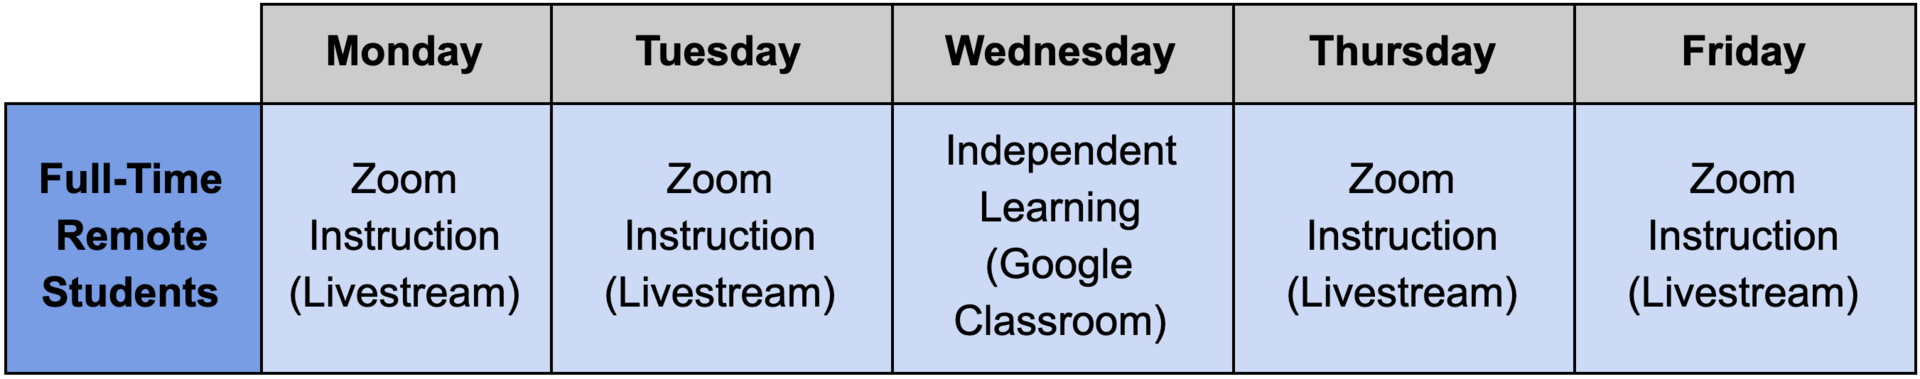 Full-Time Remote Learning Daily Schedule